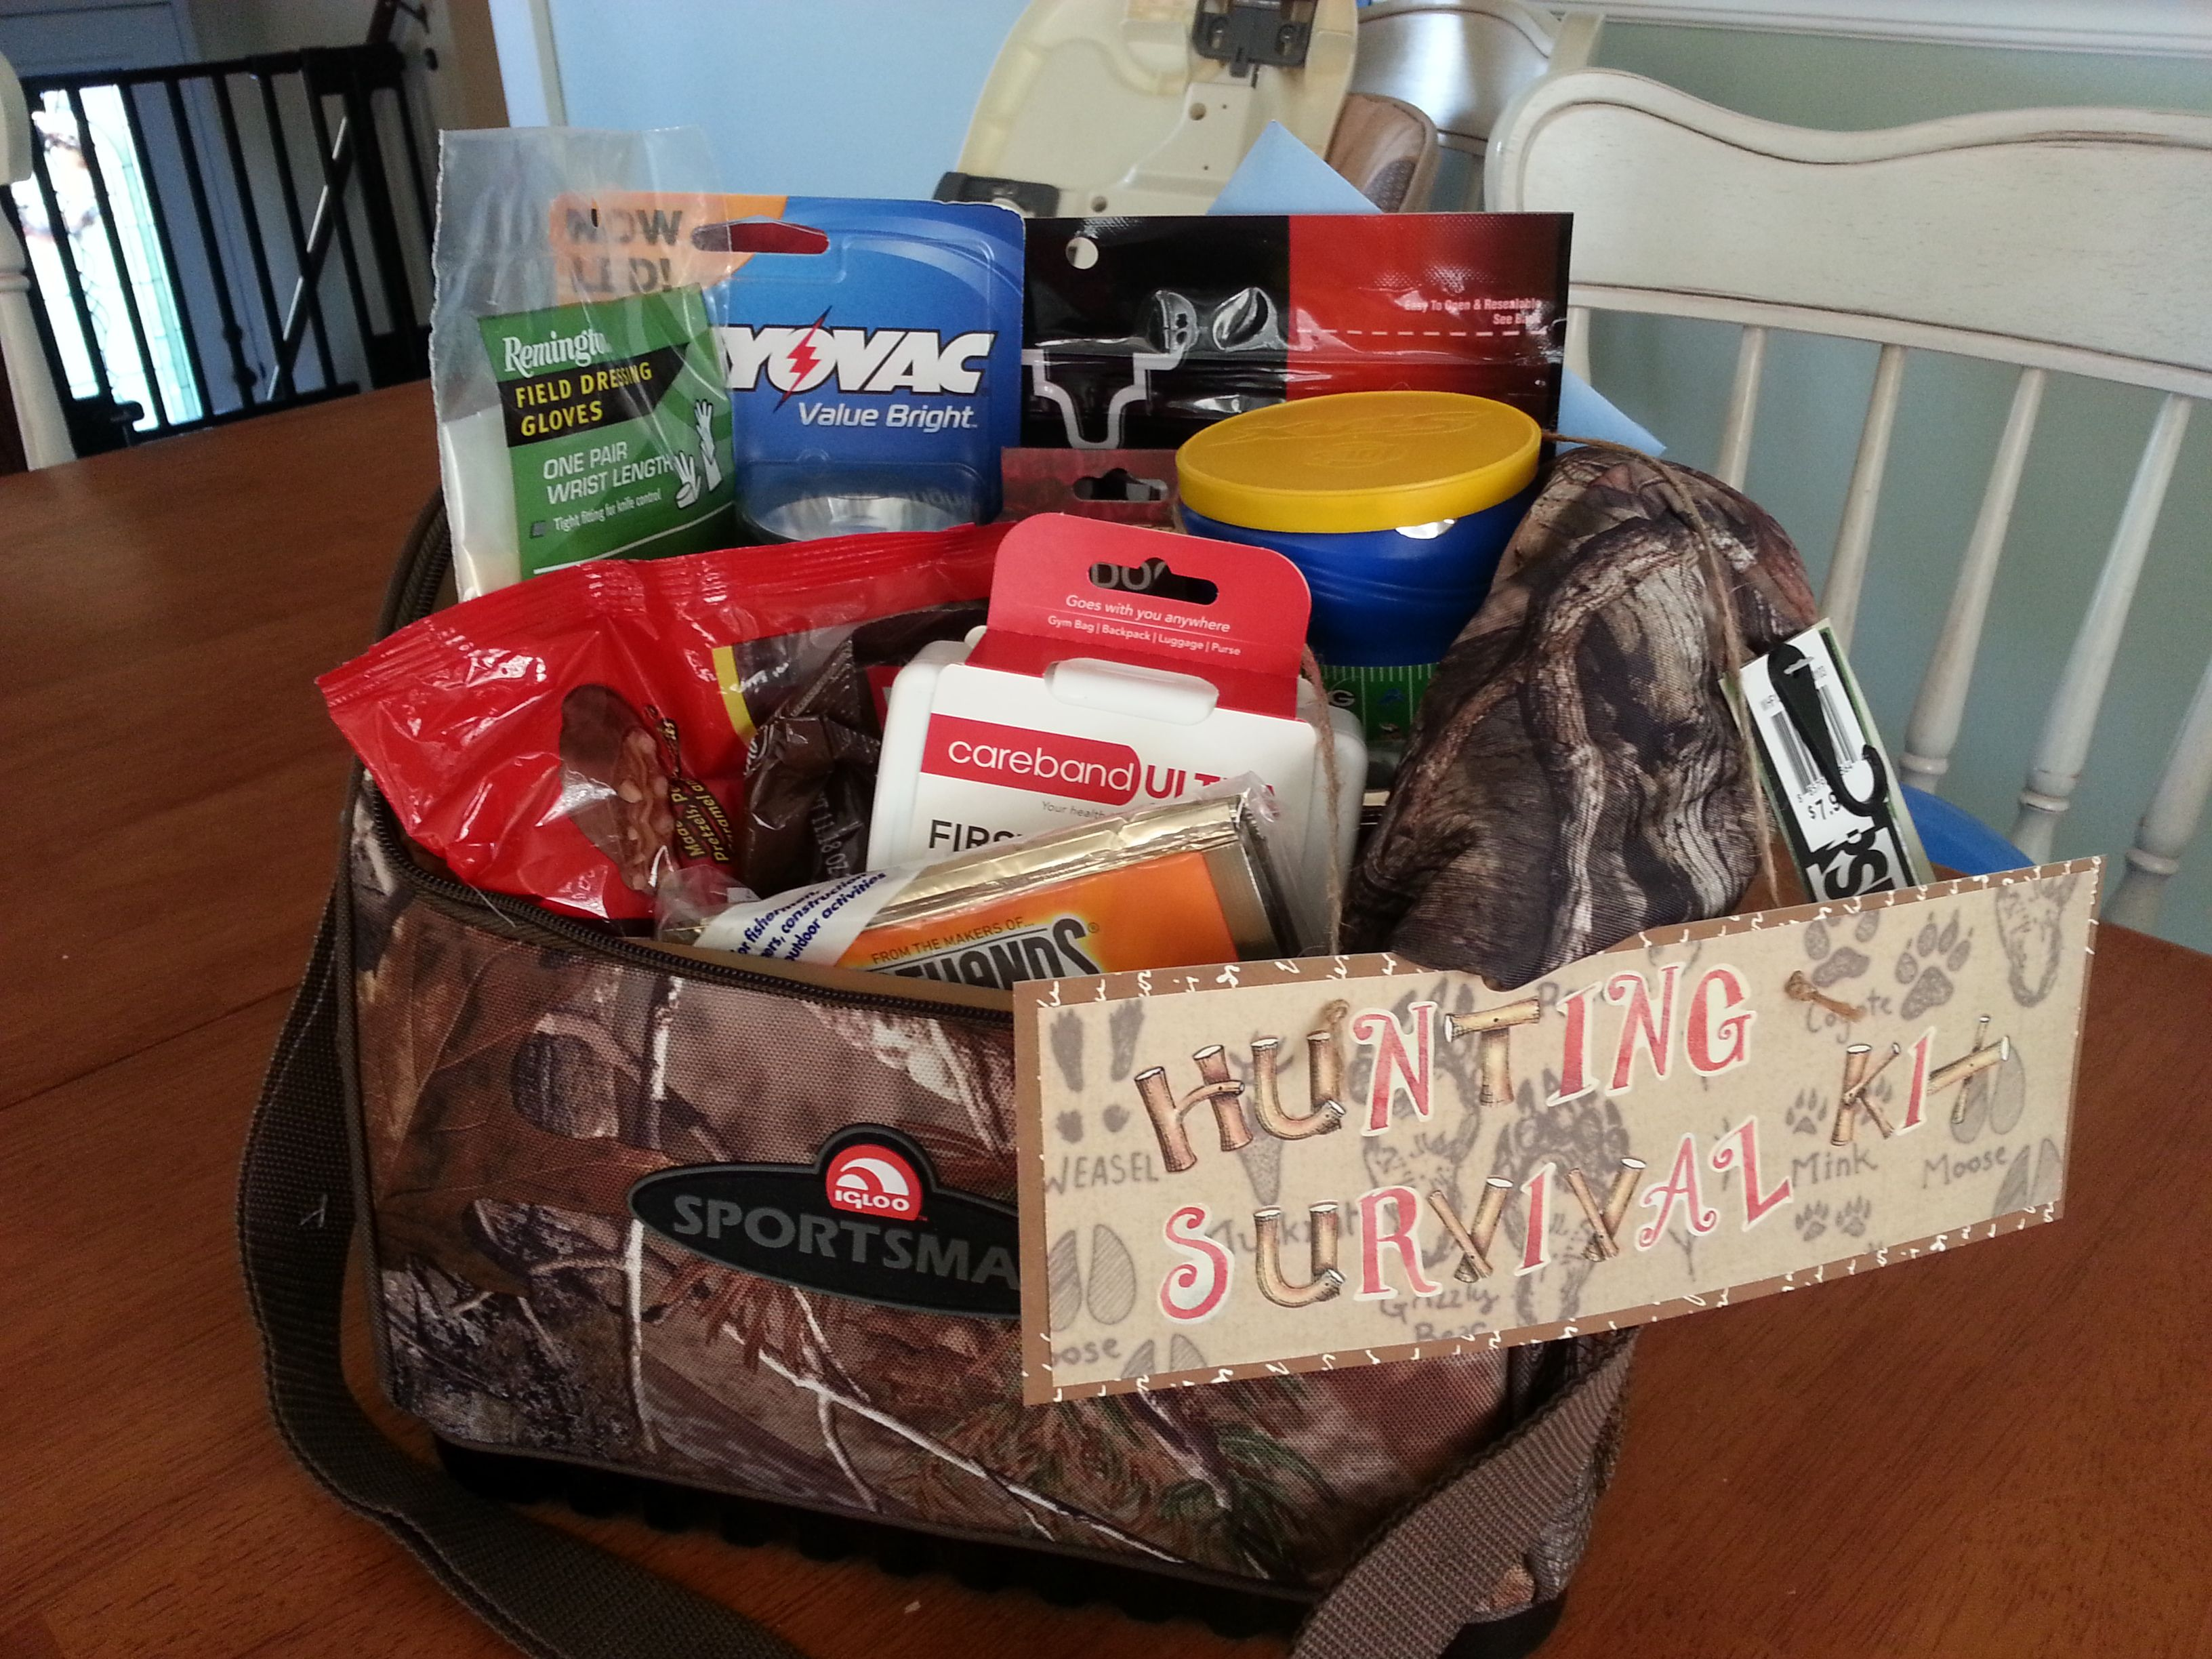 Gift idea for a husband who is a hunter pack it with snacks hand gift idea for a family memeber who is a hunter pack it with snacks hand warmers gloveshat flashlight and maybe a couple small hunting tools negle Image collections